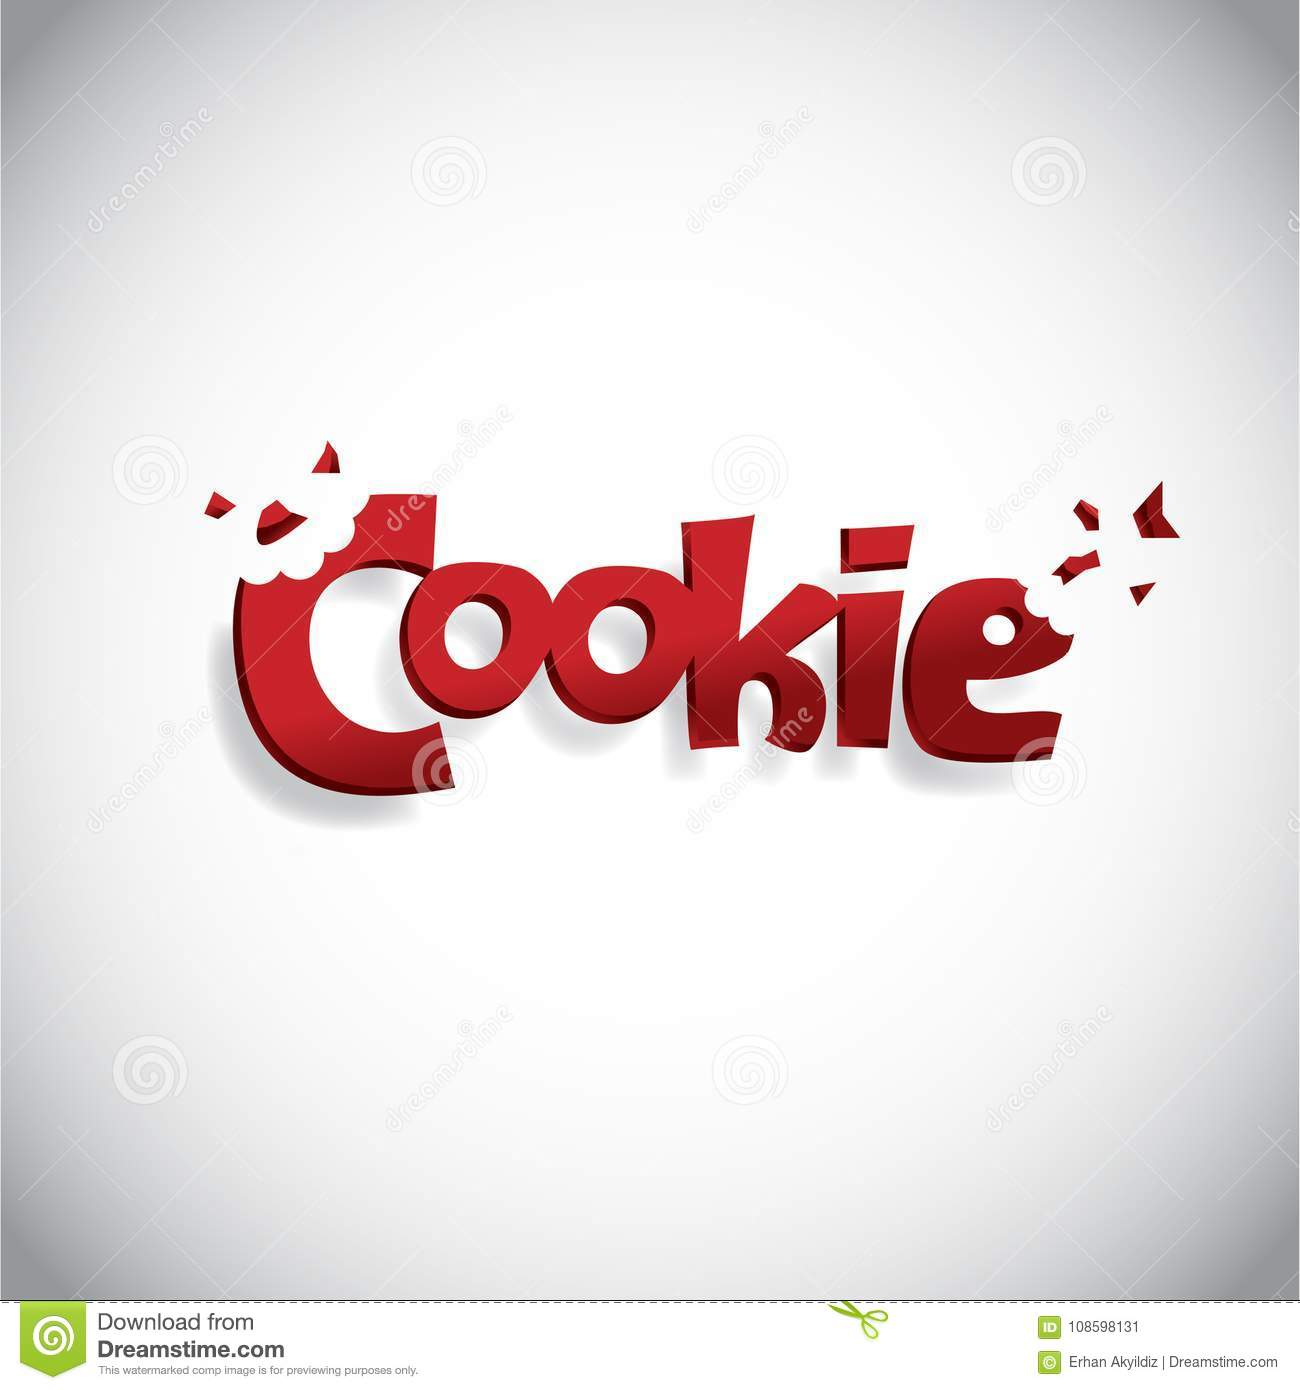 cookie logo stock illustrations 10 562 cookie logo stock illustrations vectors clipart dreamstime https www dreamstime com cookie logo cafe restaurant patisserie other cookie logo design image108598131